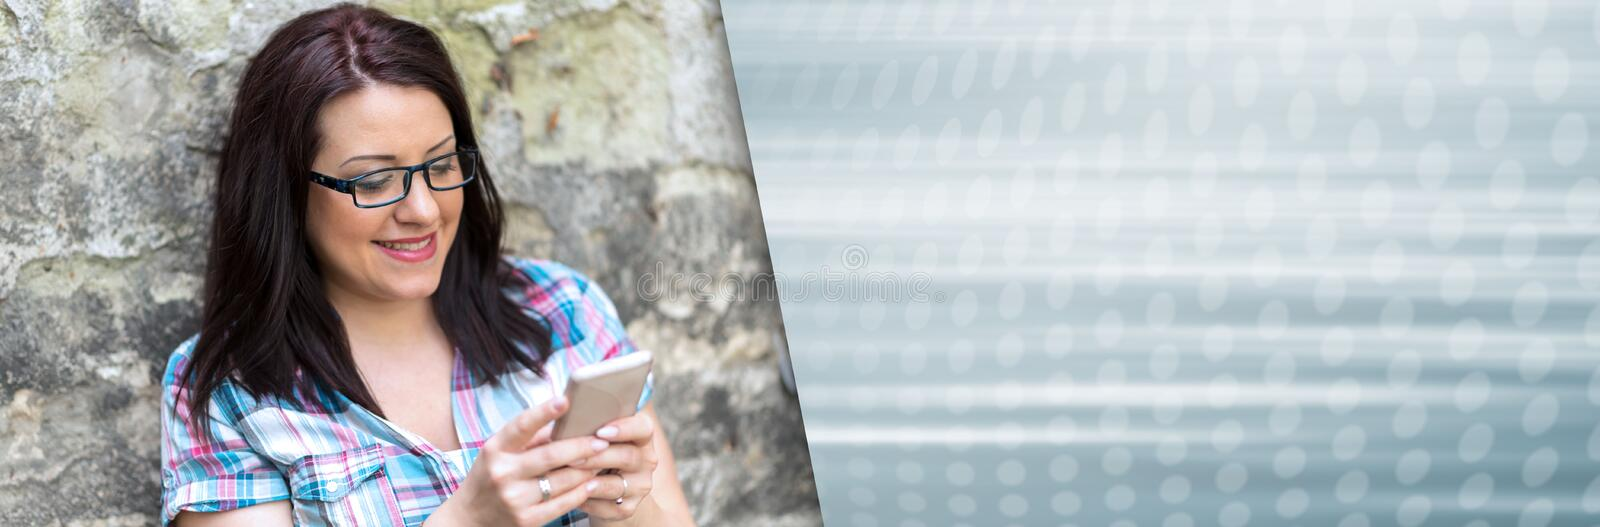 Portrait of beautiful young woman using phone. panoramic banner stock image